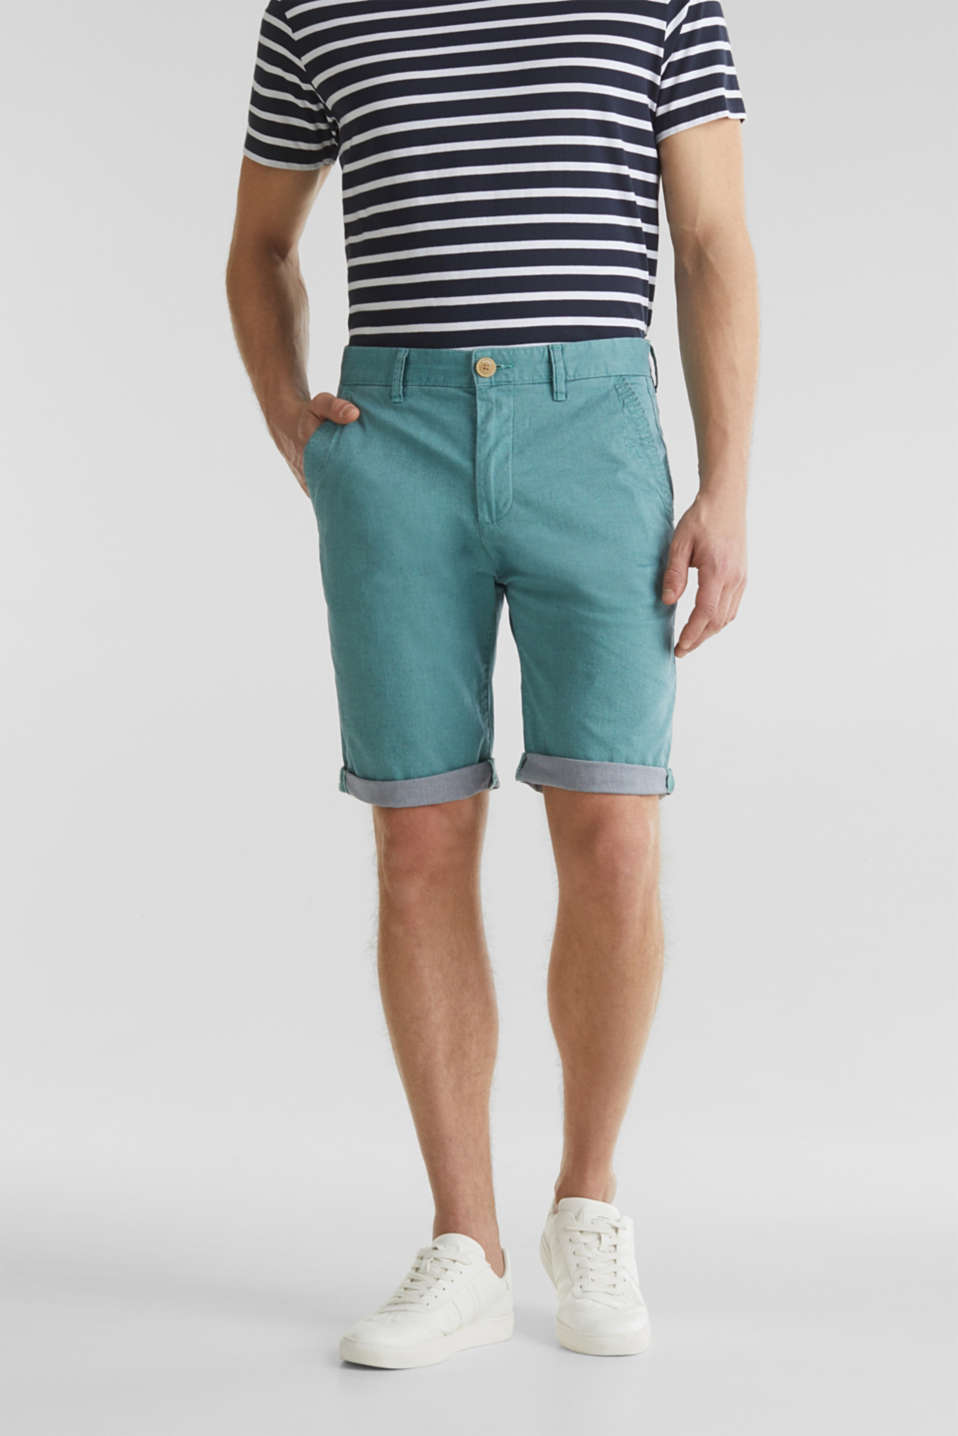 Shorts with garment-washed effects, TEAL GREEN, detail image number 0